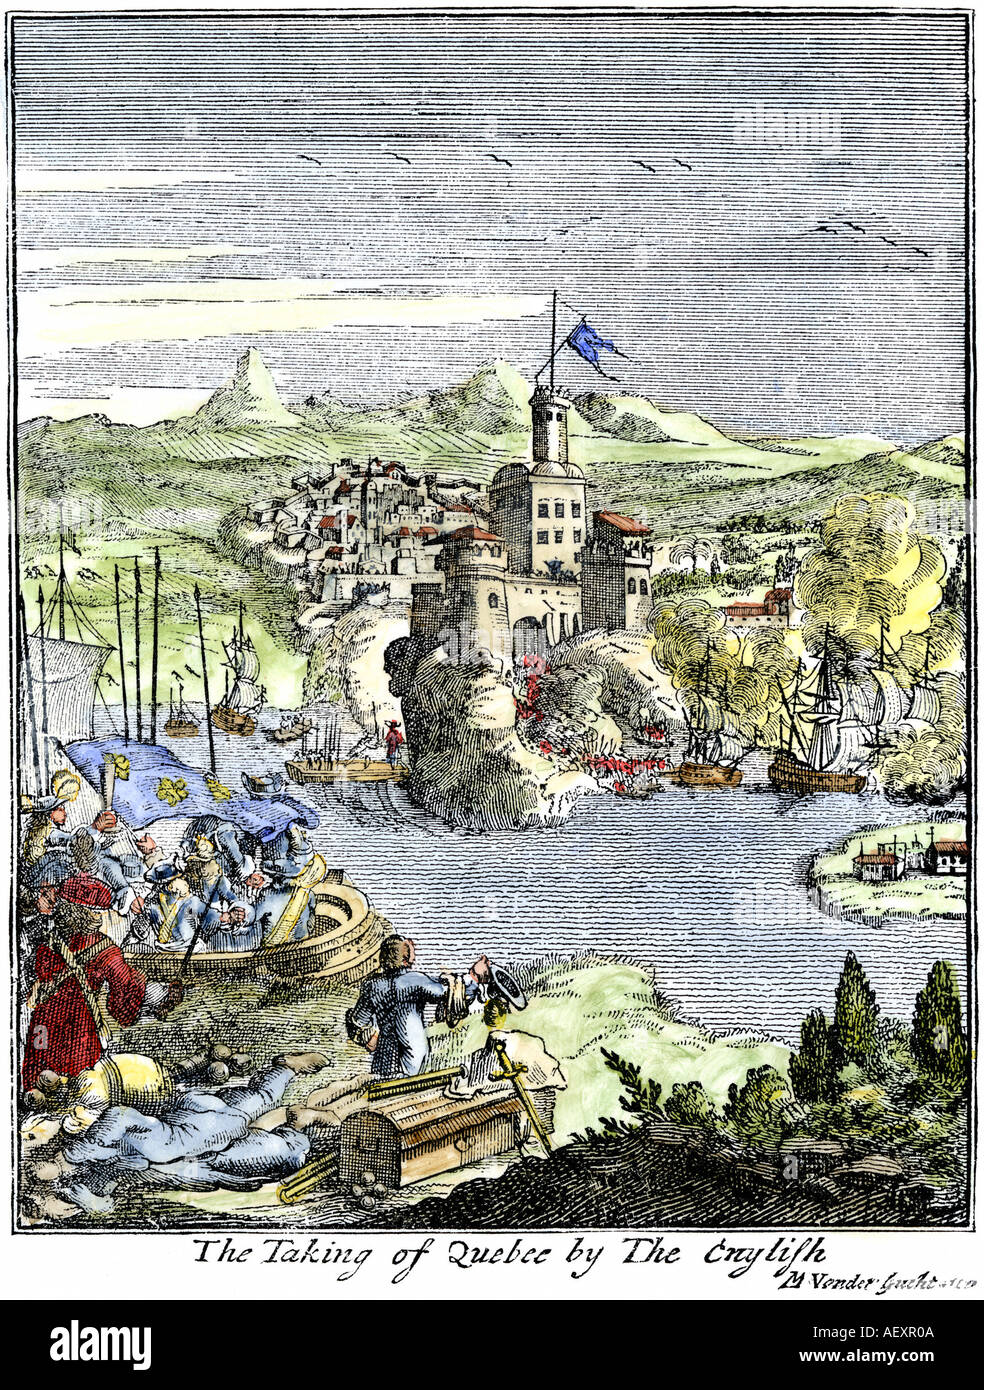 Capture of French Quebec by the English in 1629. Hand-colored woodcut of an illustration from Hennepin - Stock Image